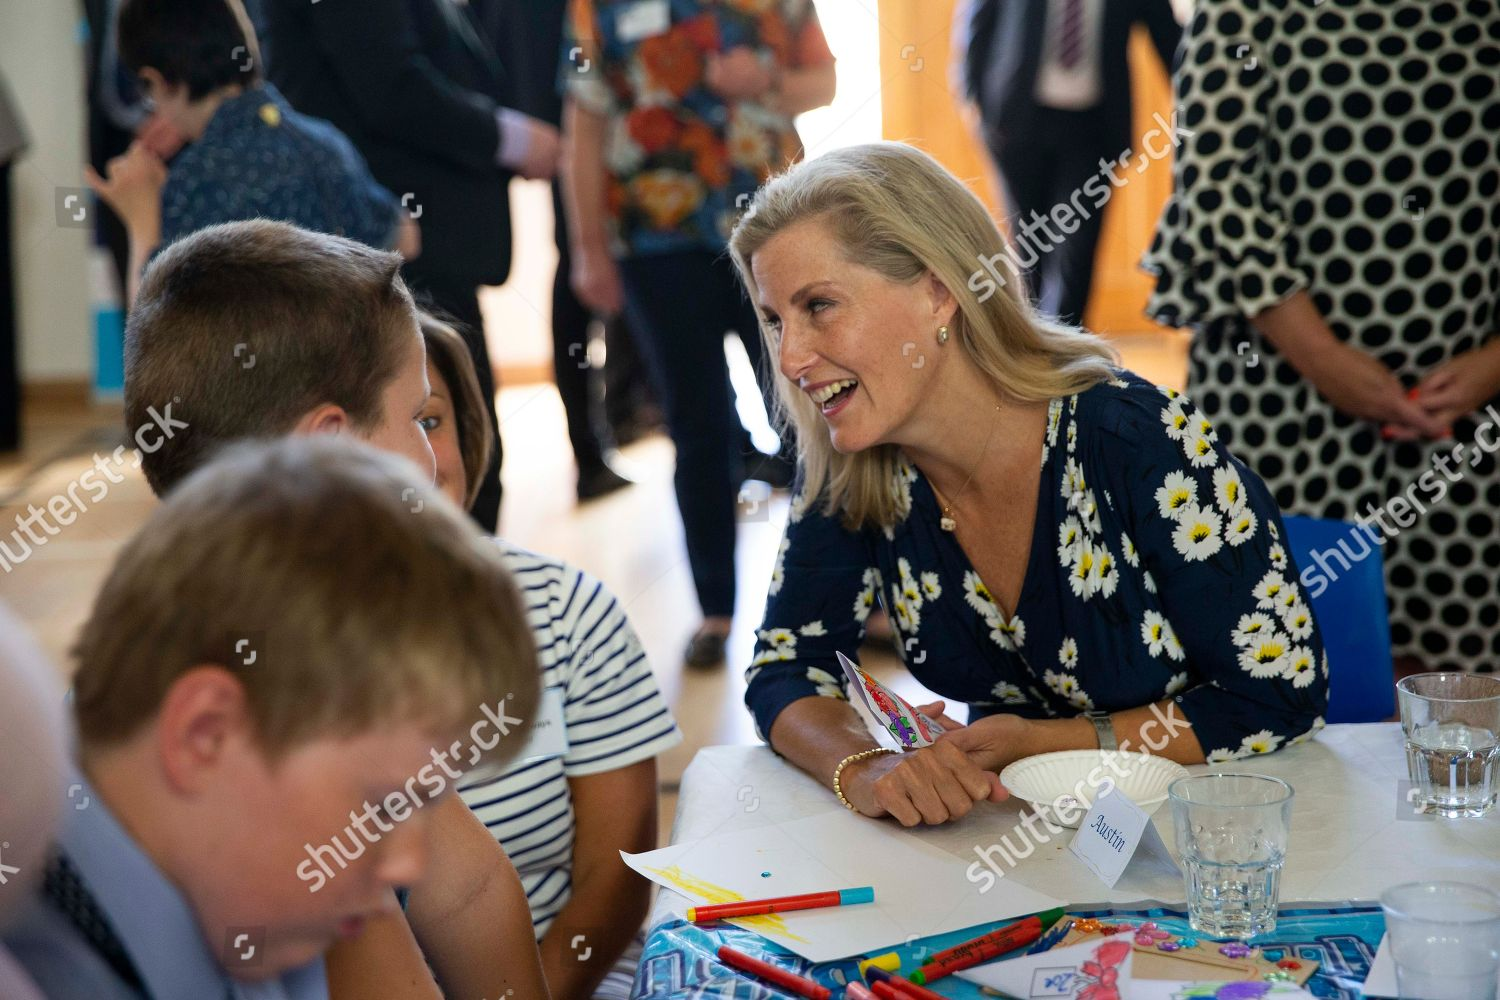 sophie-countess-of-wessex-visits-the-me2-club-tea-party-woodley-uk-shutterstock-editorial-9885213j.jpg